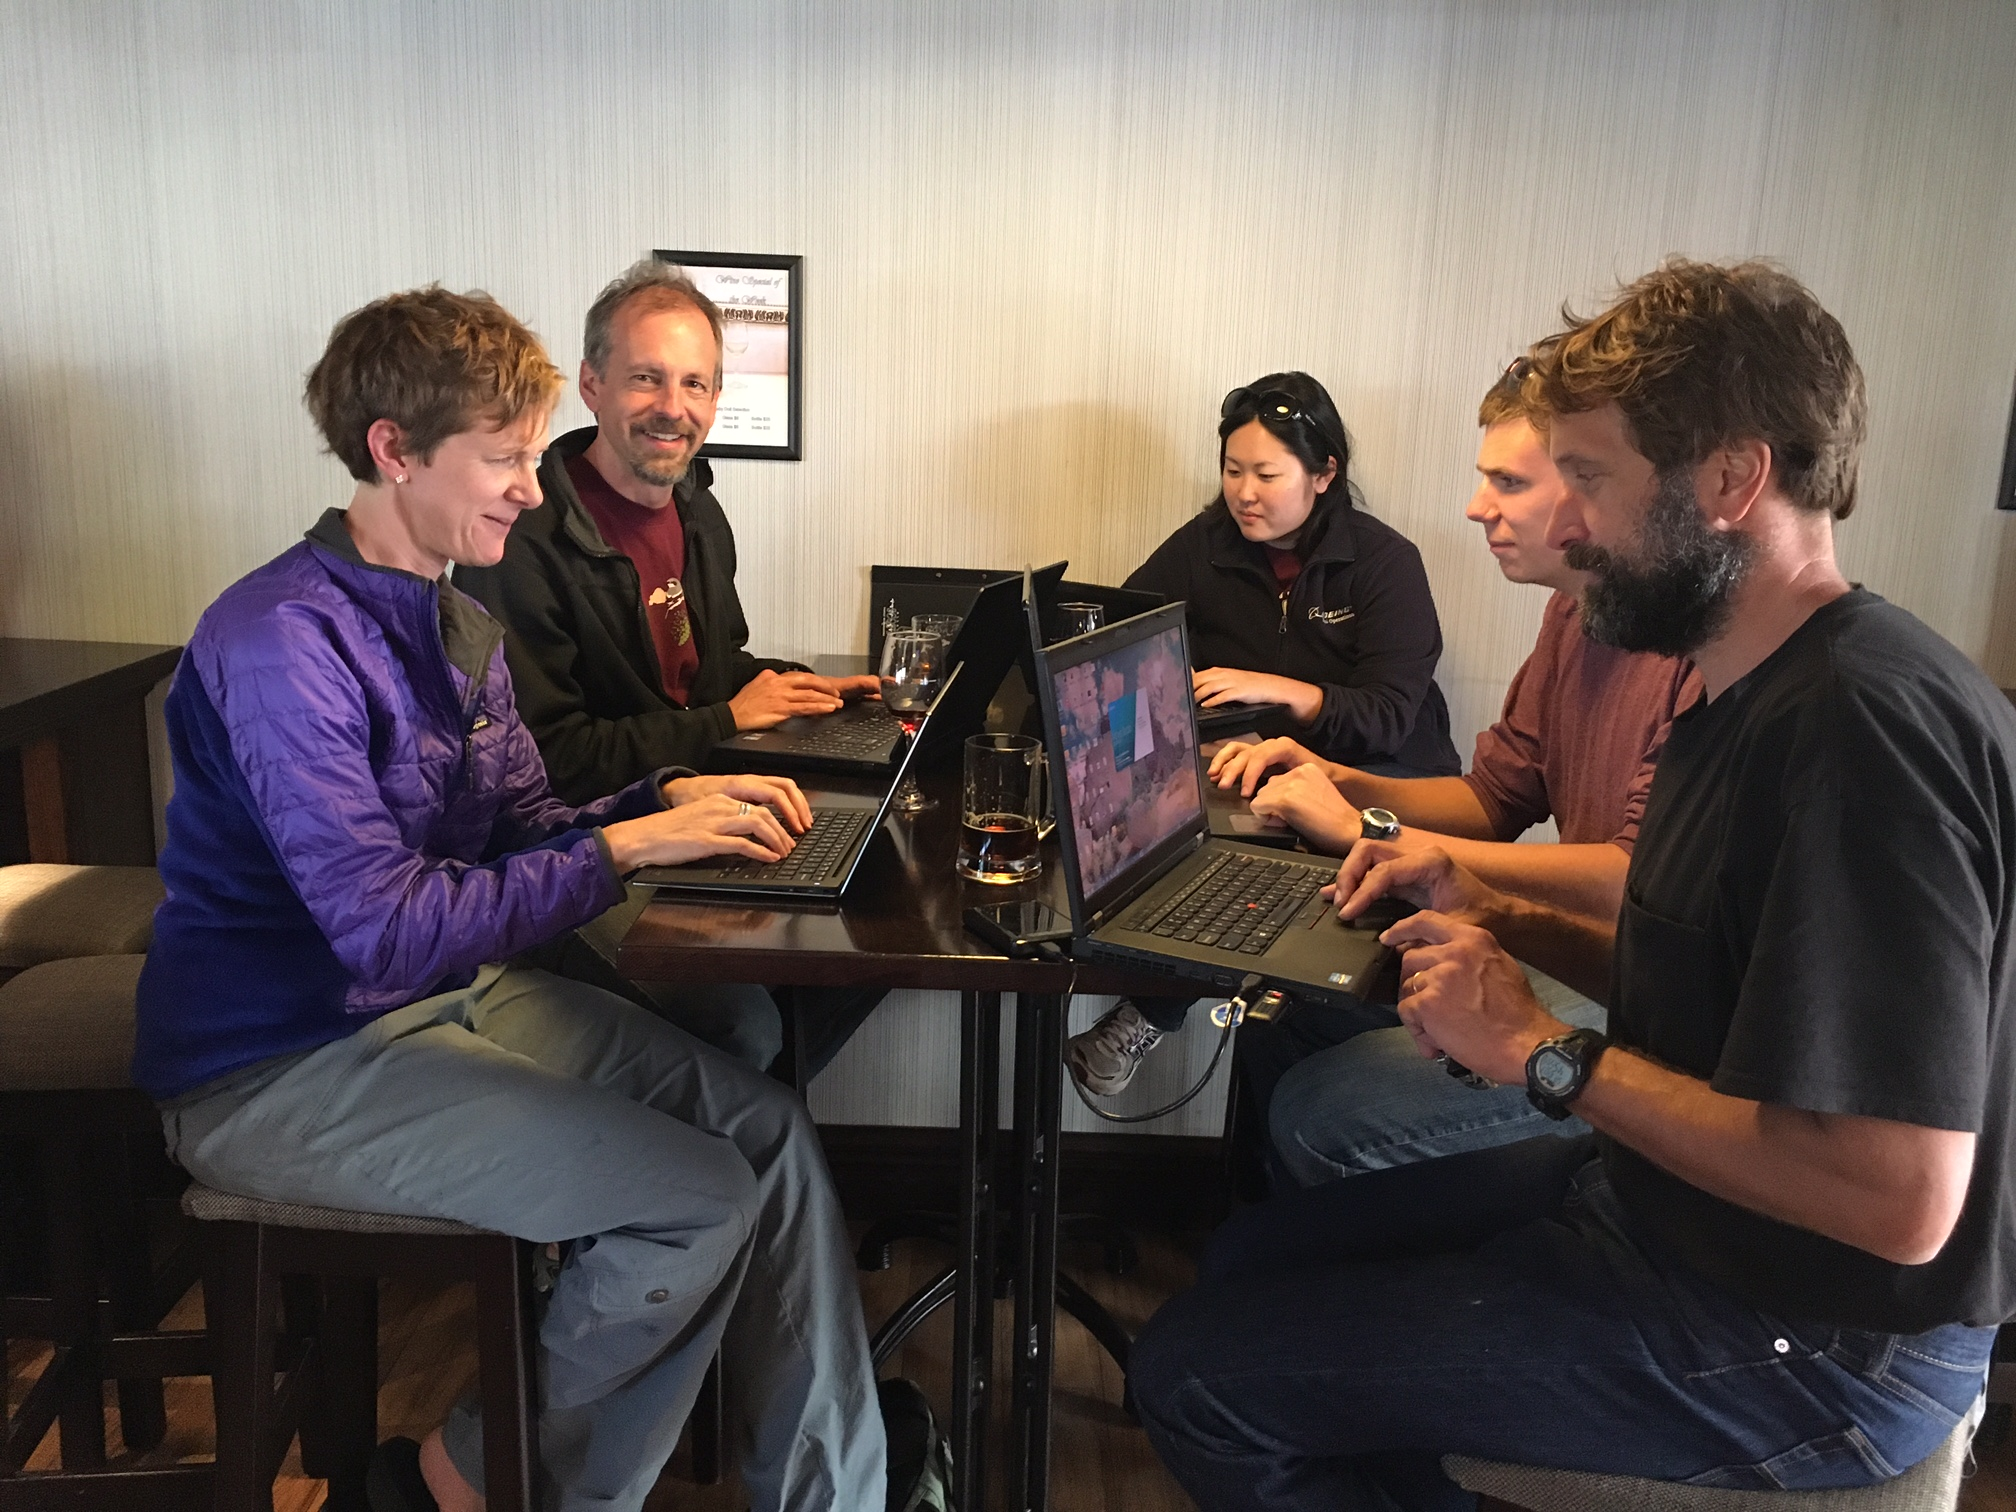 The crew working communally on the web page at our hotel in Christchurch.  So far our flight to McMurdo has been delayed by two days, a common occurrence due to bad weather at McMurdo.